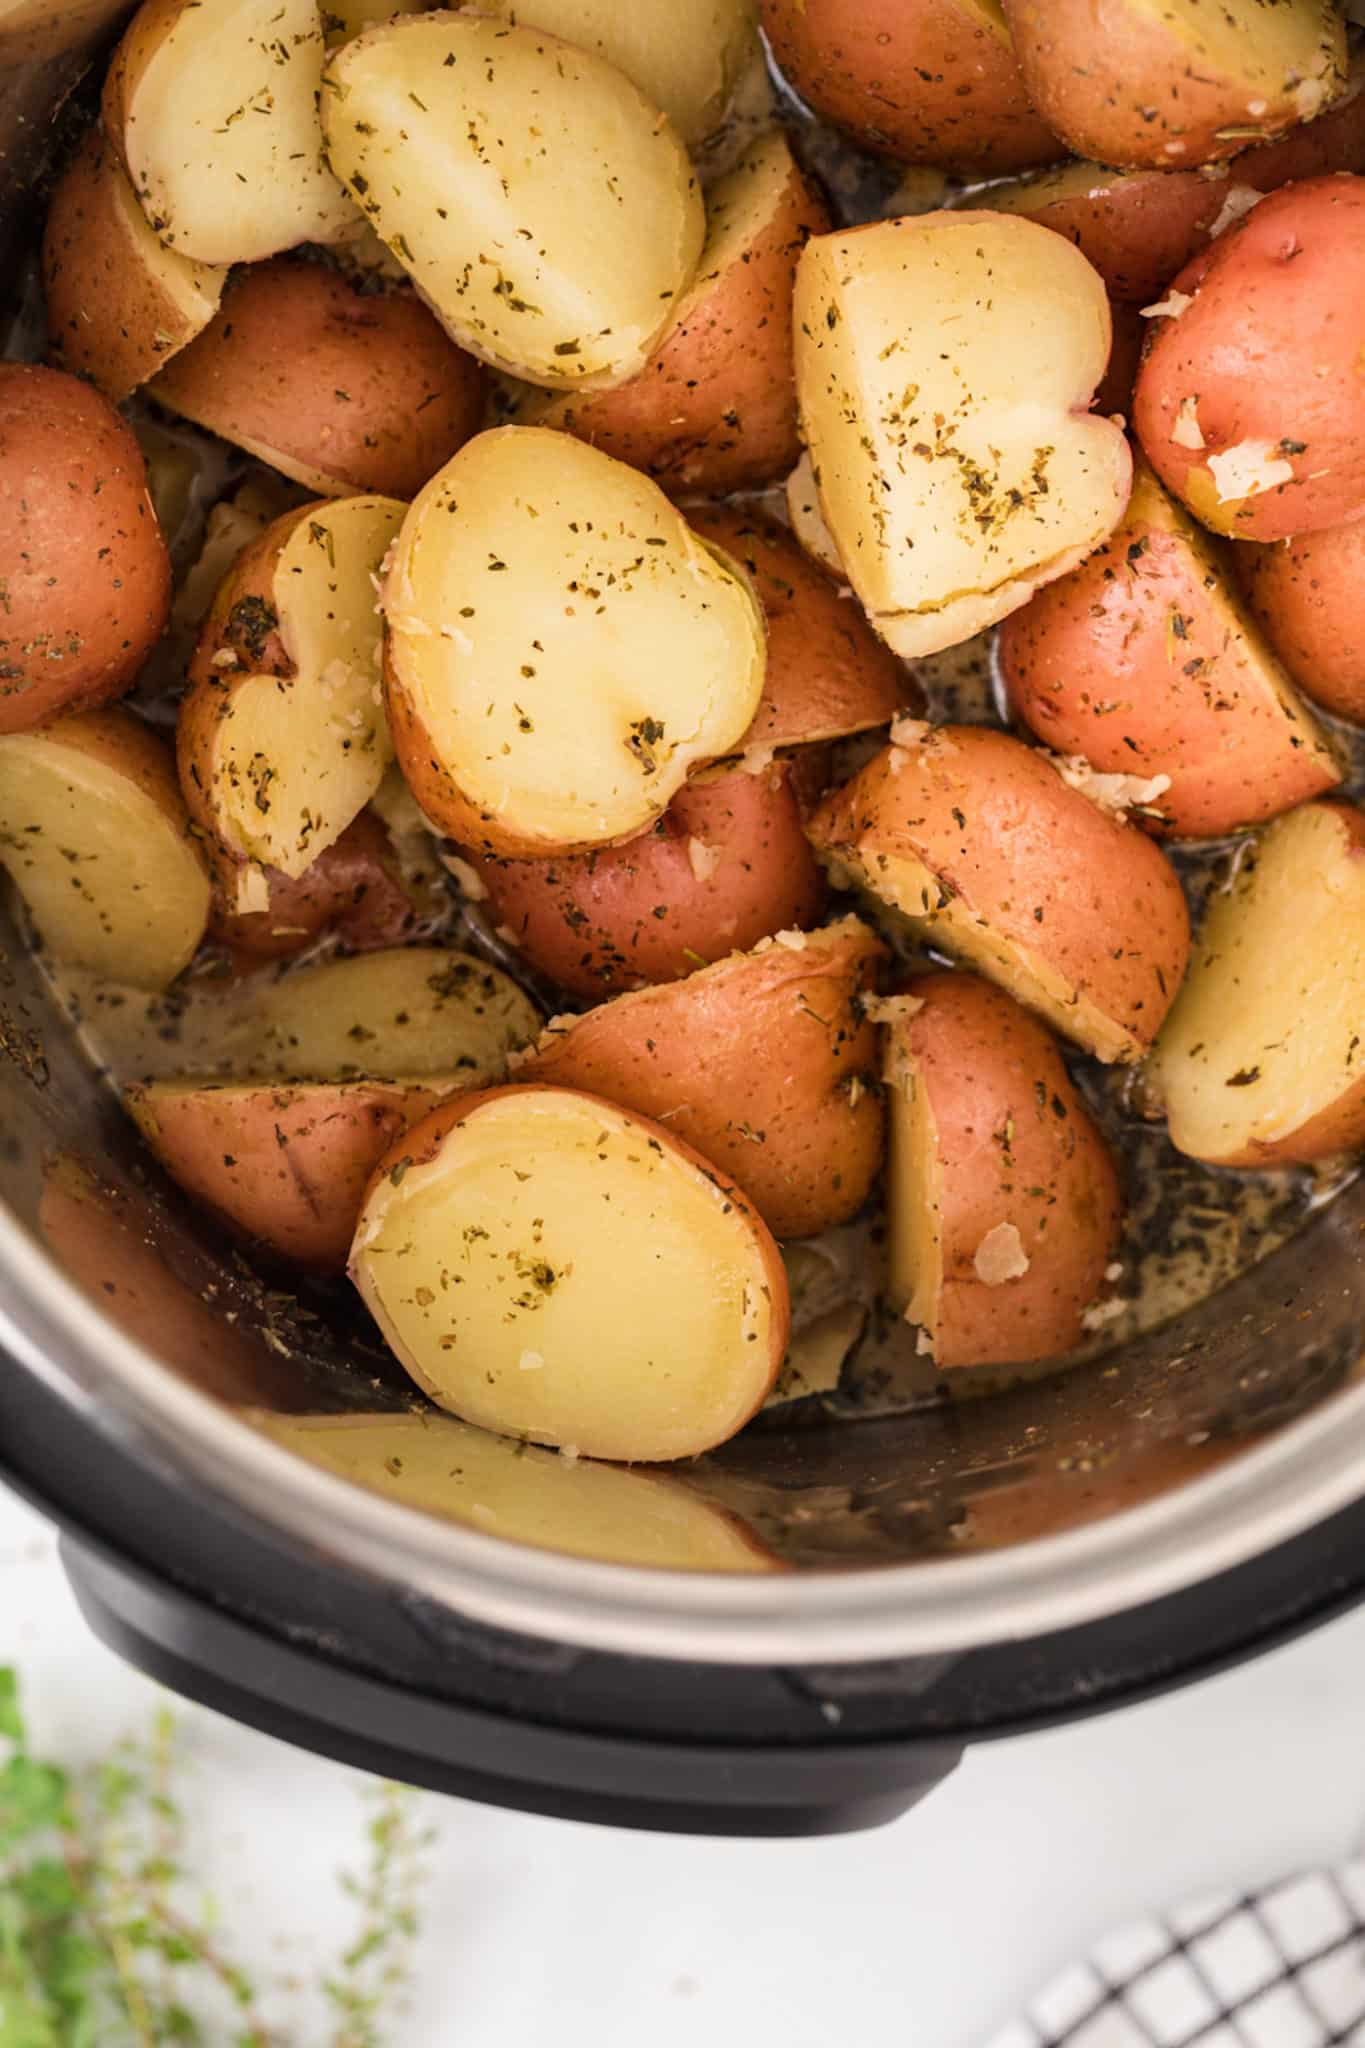 cooked red potatoes with seasonings inside instant pot